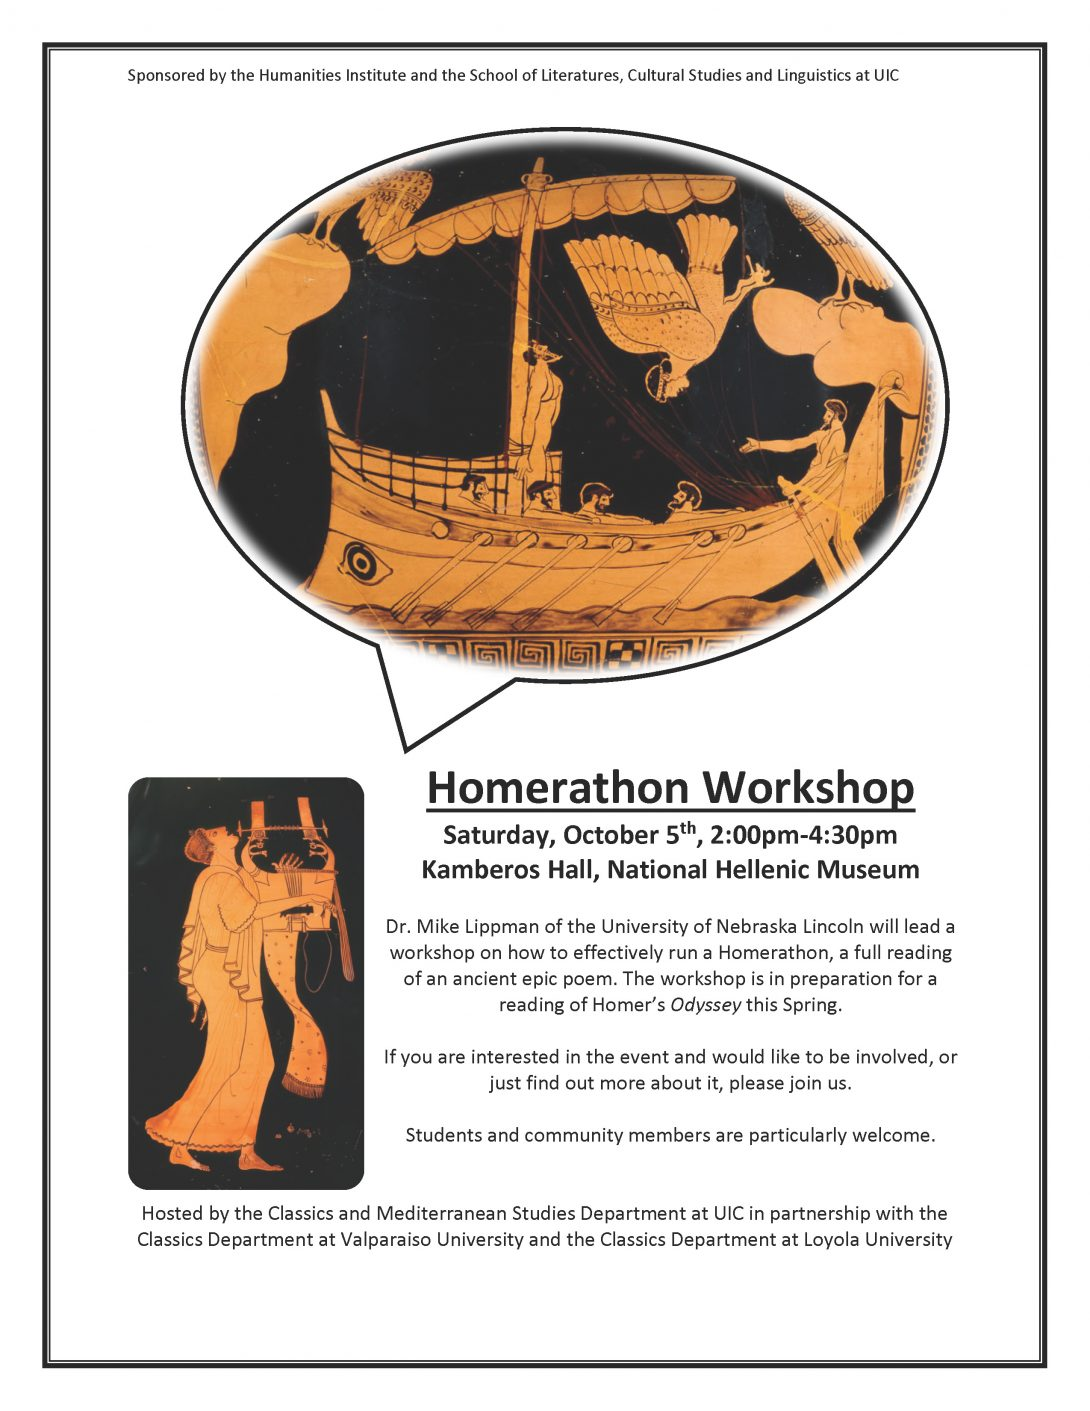 Homerathon Workshop